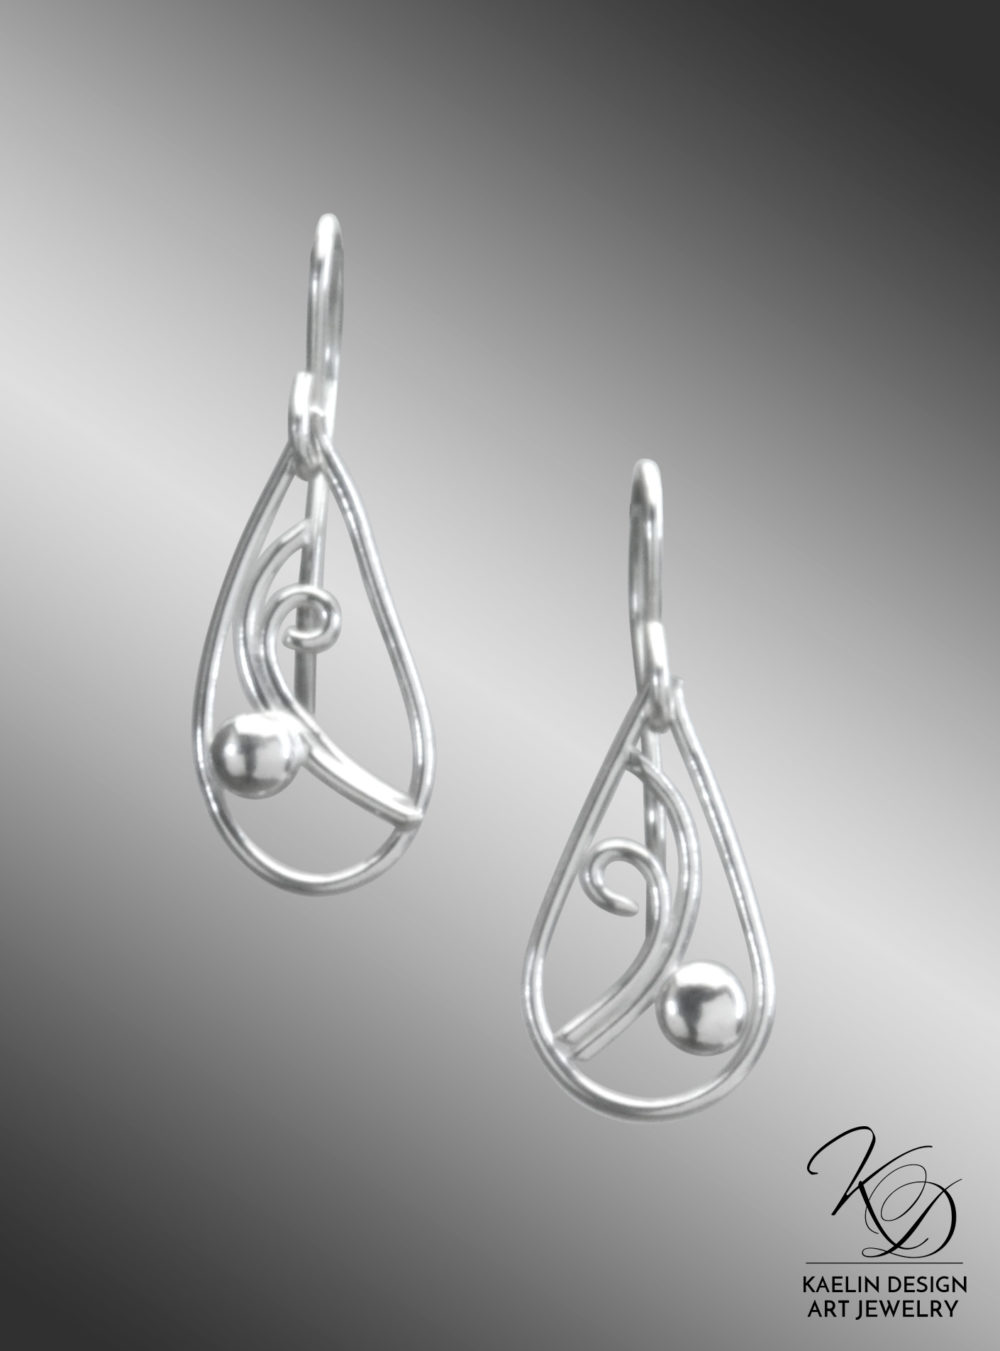 Laguna Hand Forged Sterling Silver Earrings by Kaelin Design Fine Art Jewelry